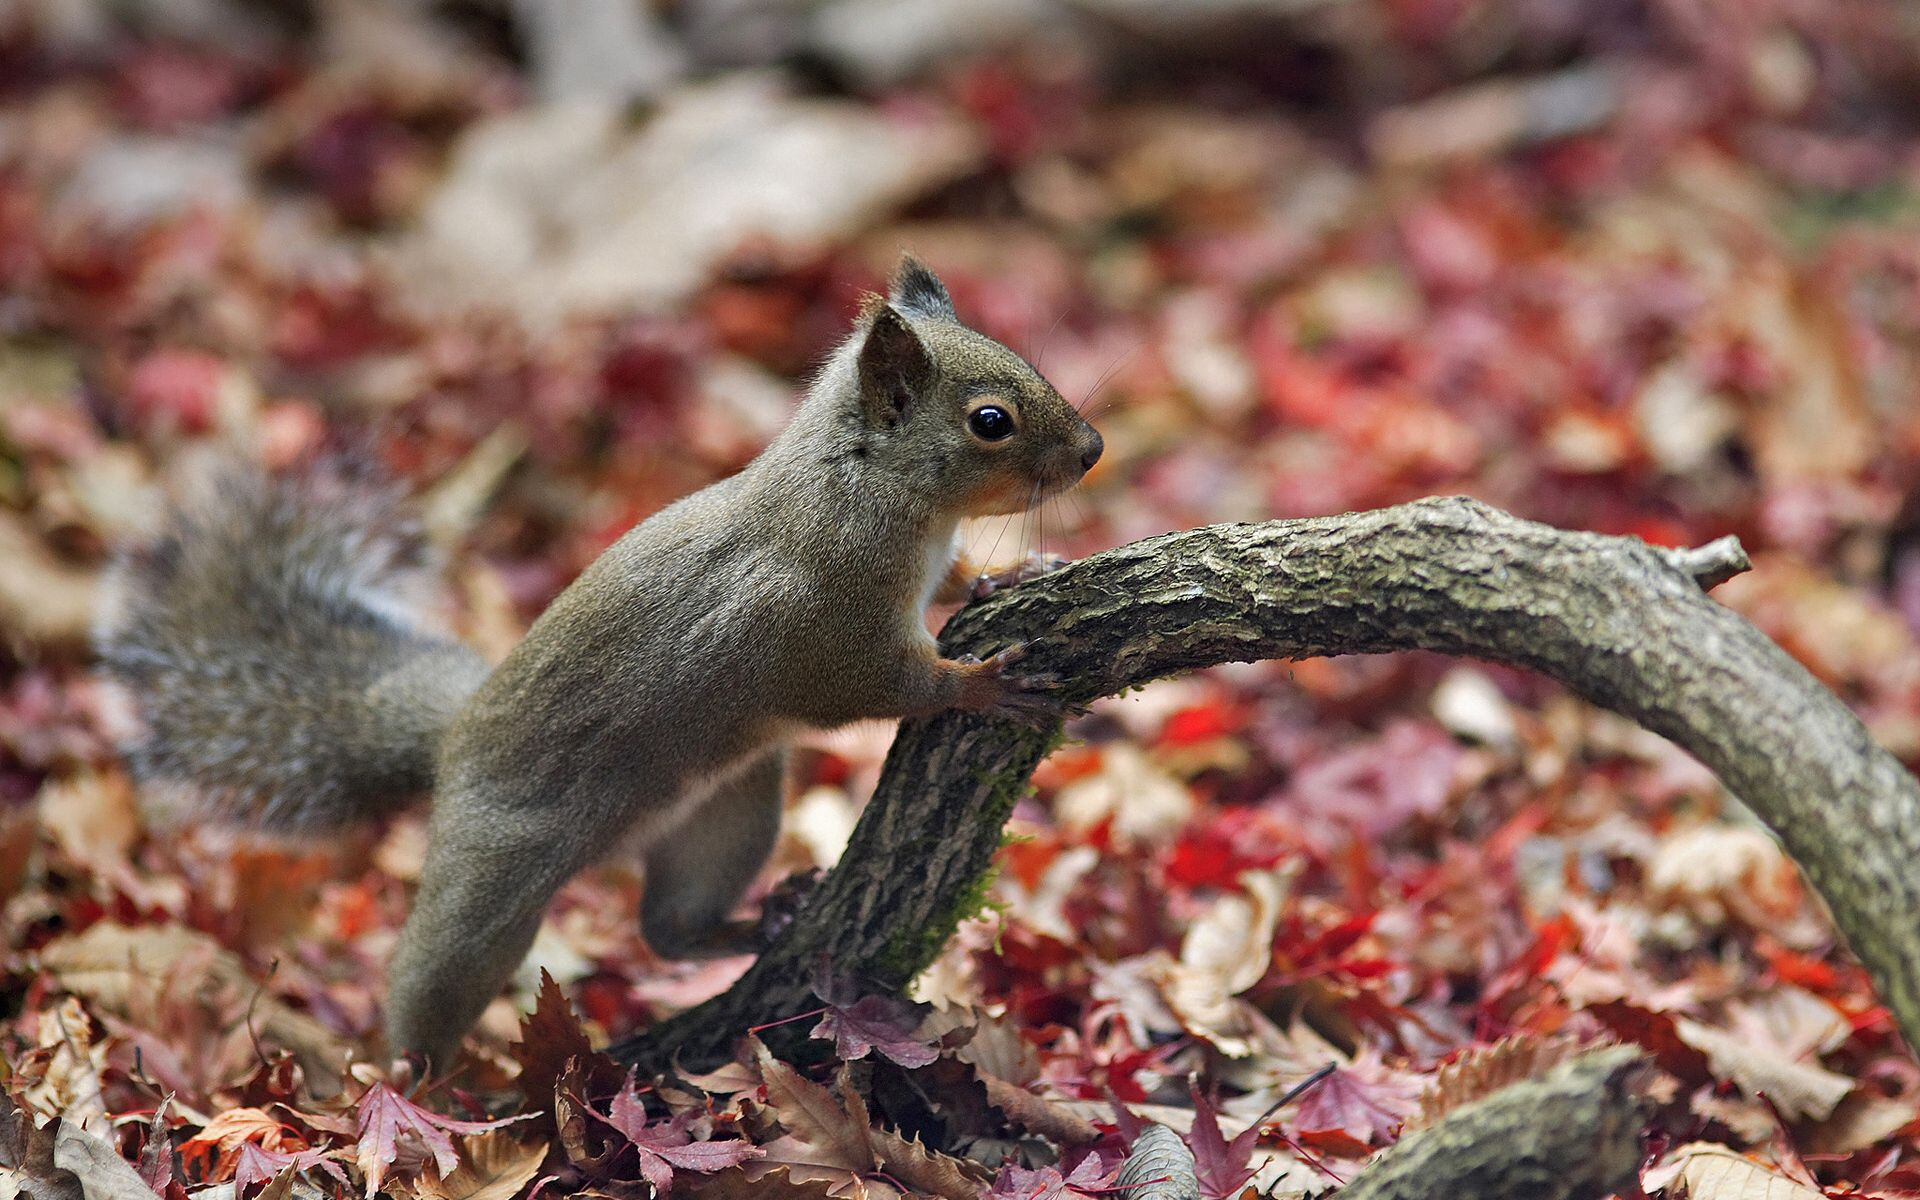 153093 download wallpaper Animals, Squirrel, Autumn, Leaves, Animal screensavers and pictures for free